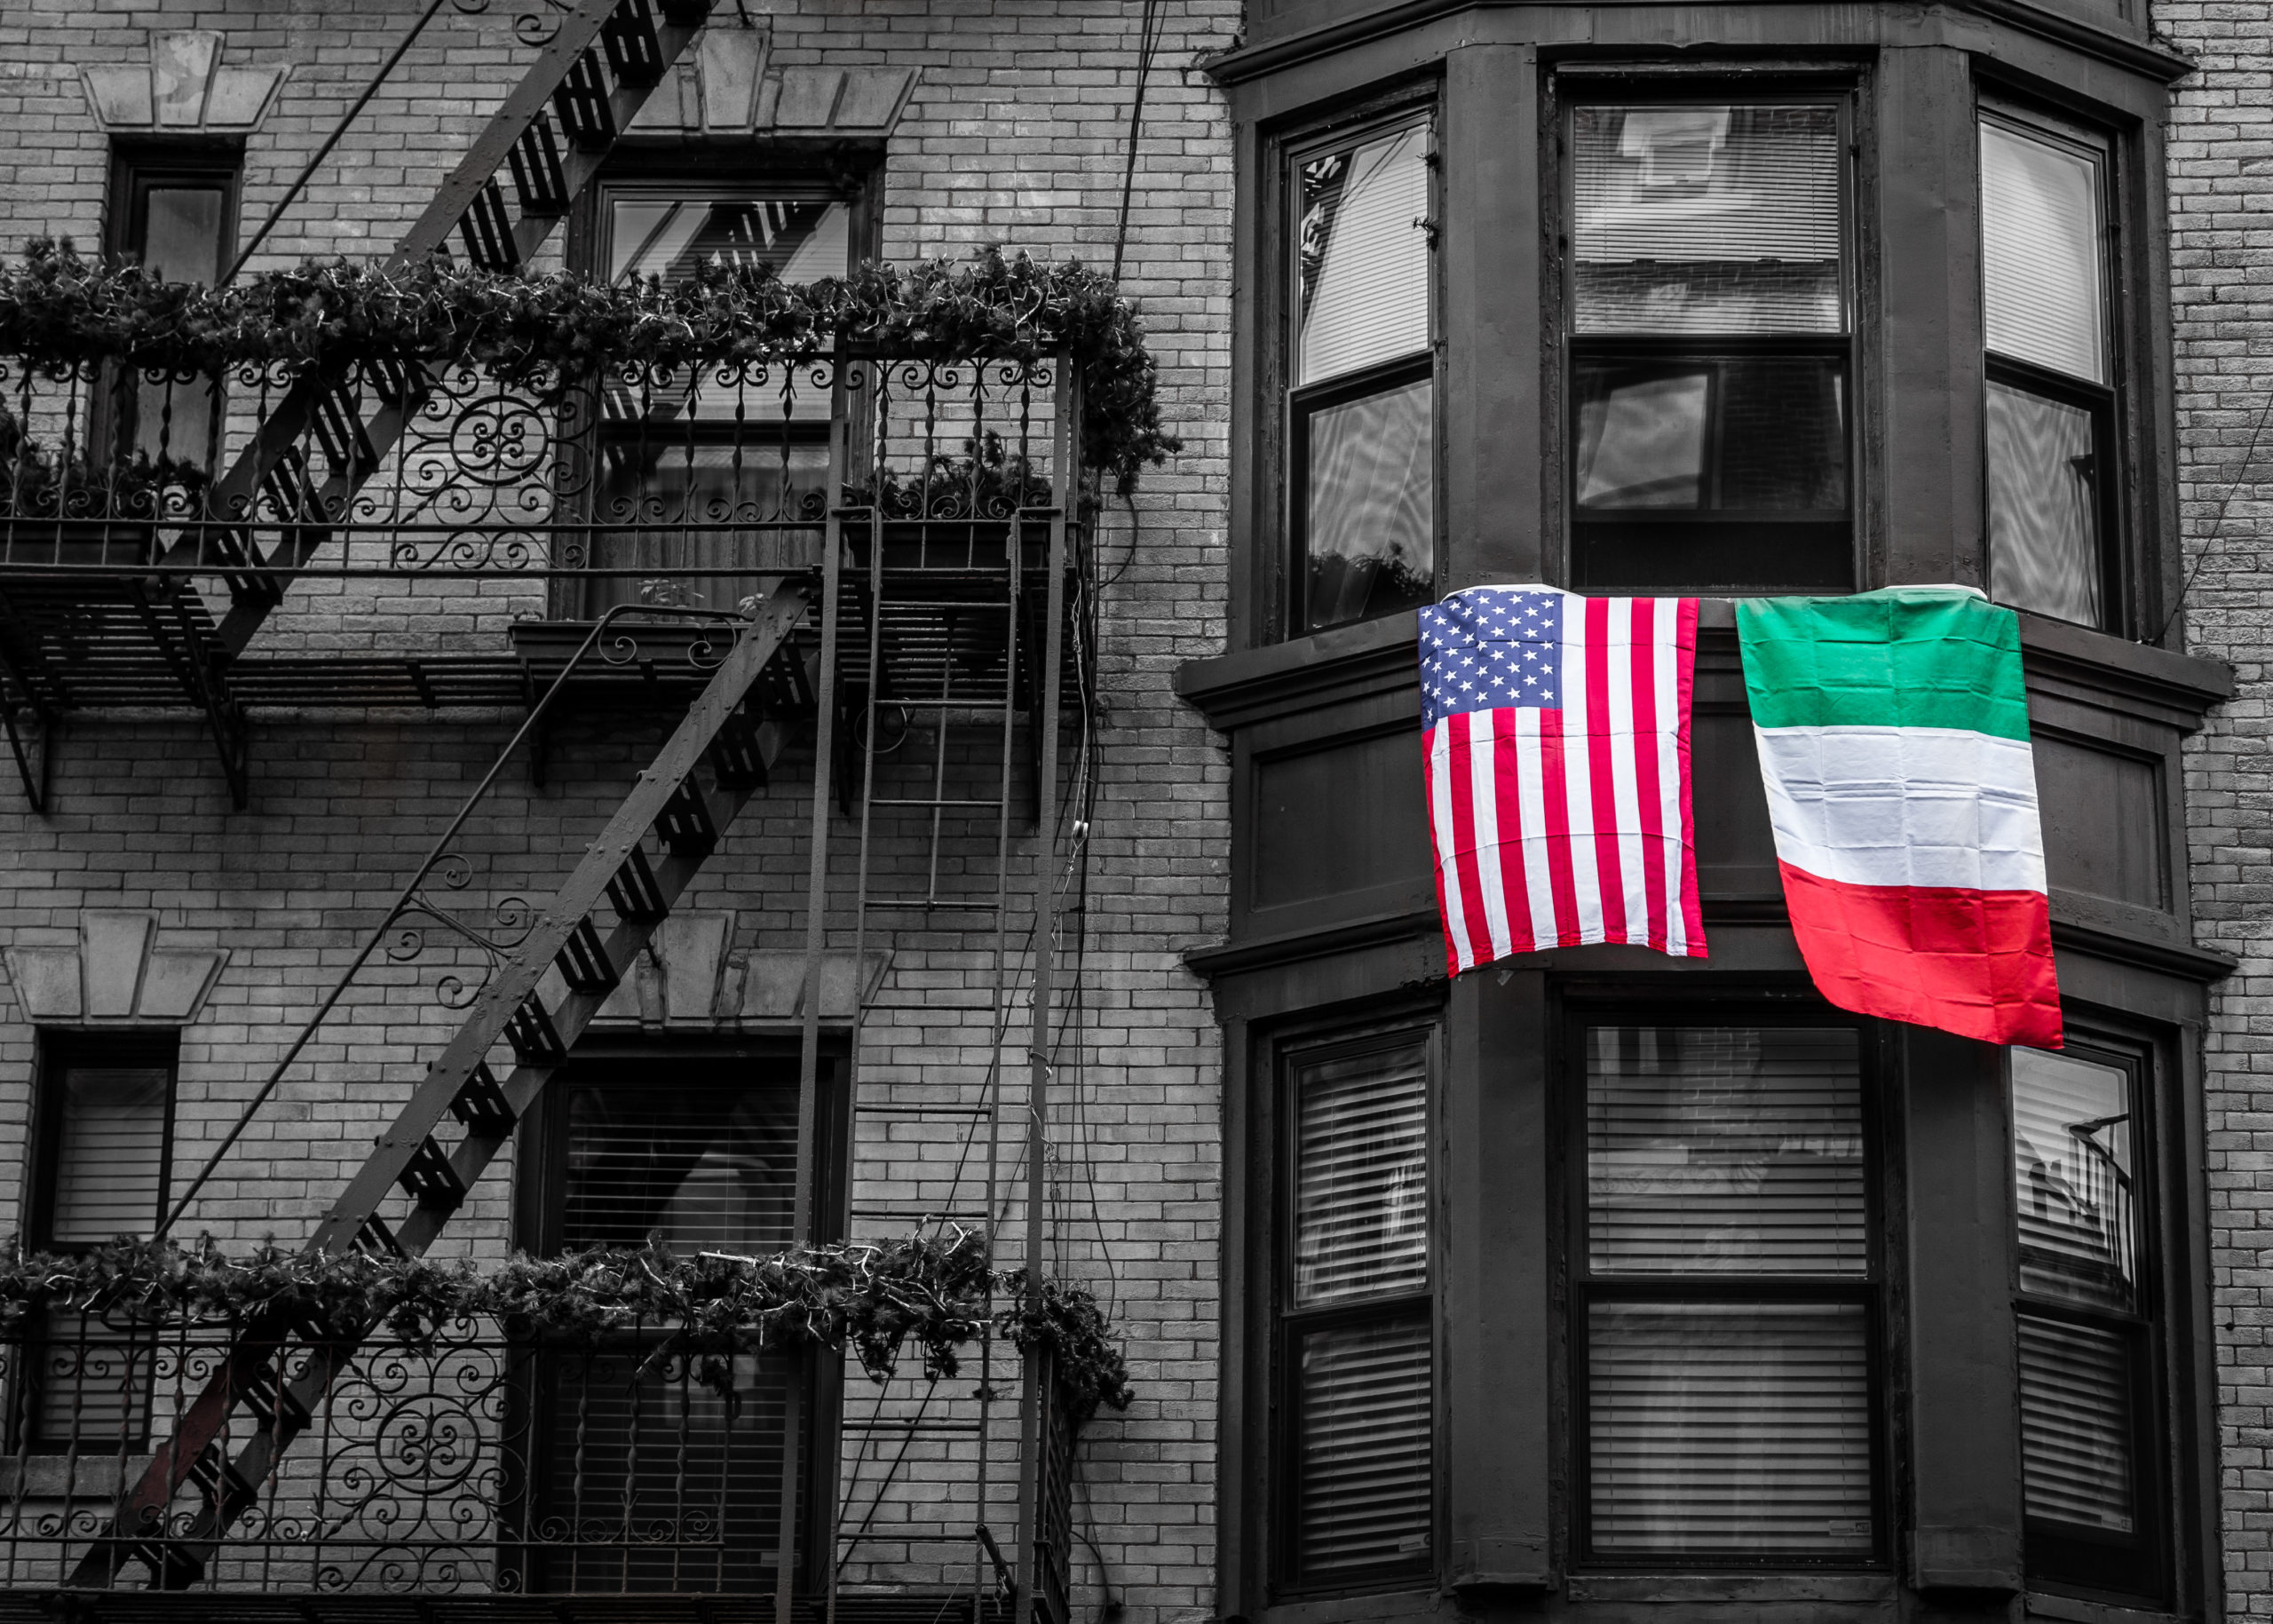 American and Italian flags flying side by side | Little Italy in Baltimore, MD